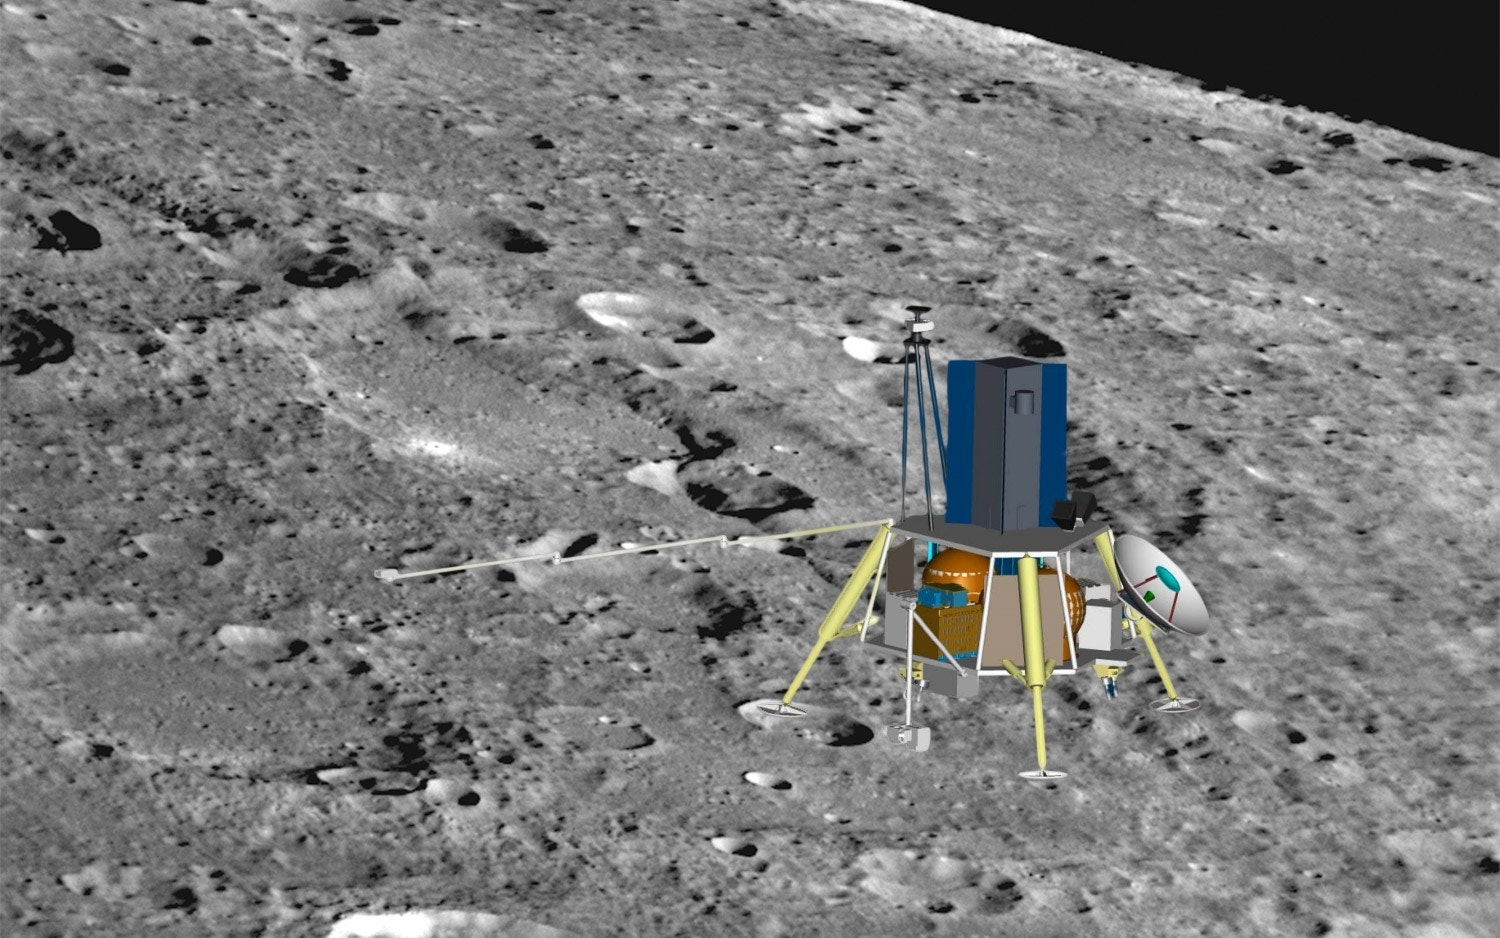 download lexical markers of common grounds (sip 3), volume